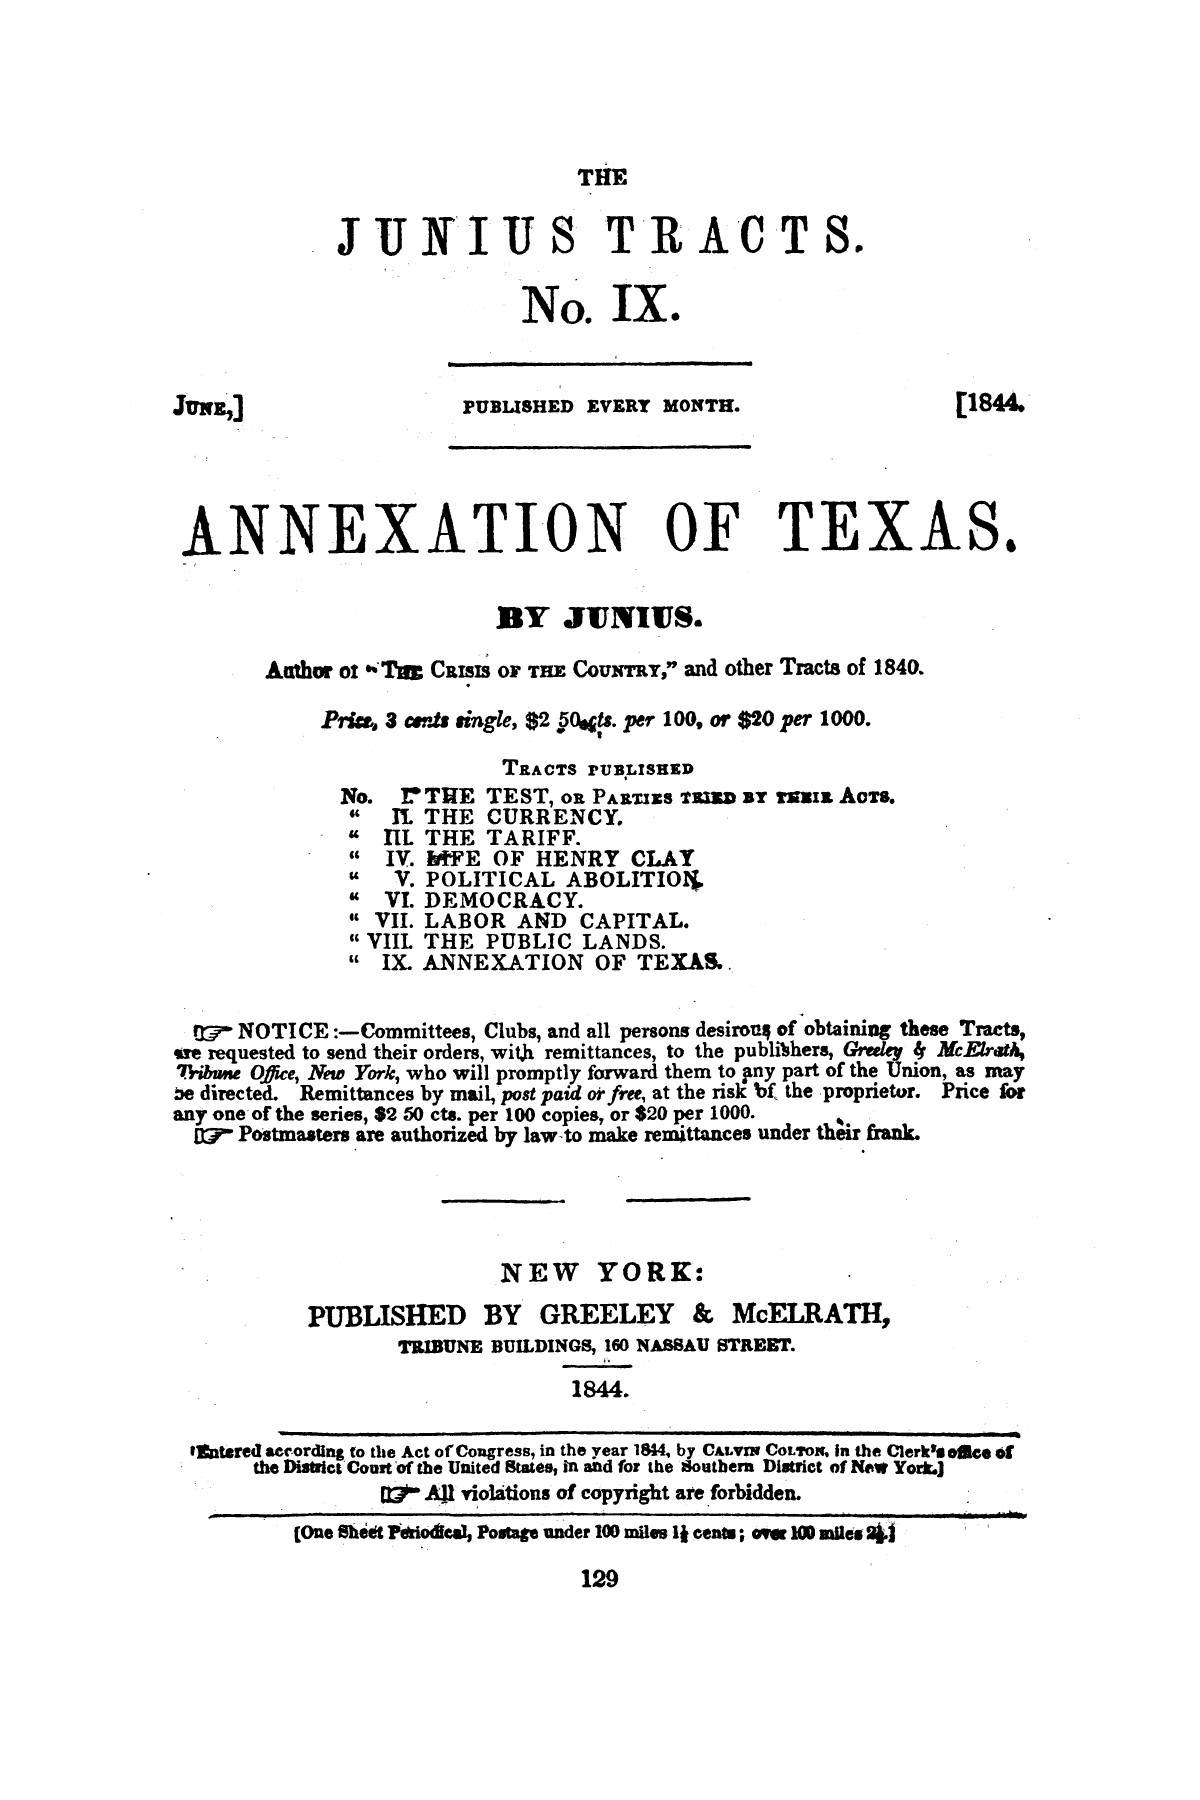 a historical overview of the none years of the annexation of texas The history of the texas annexation problem quiz overview of hot careers in texas (tx) manifest destiny's texas annexation problem related study materials.